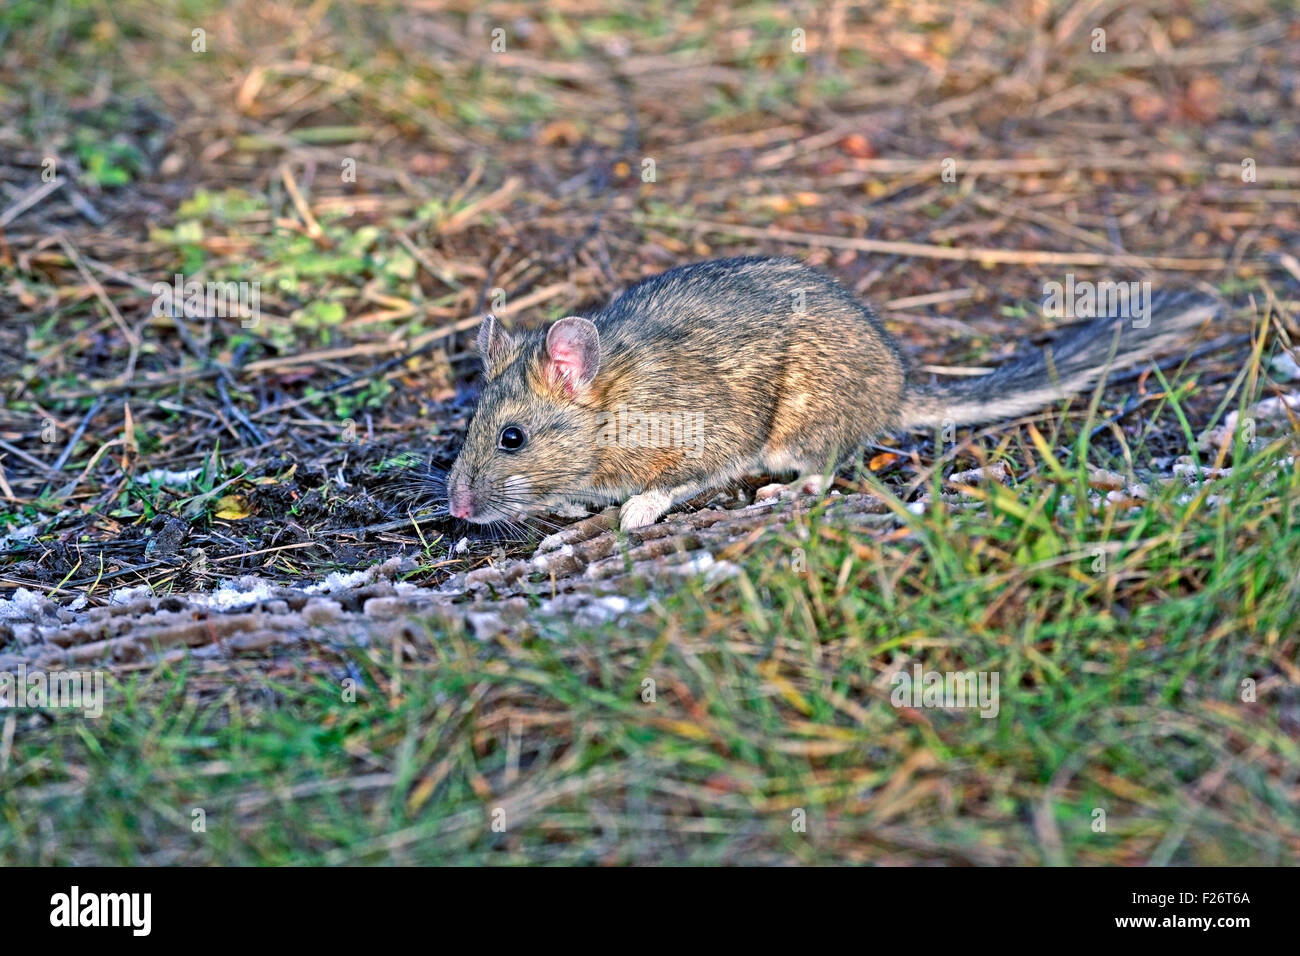 Bushy-tailed Wood rat or Pack Rat in field - Stock Image